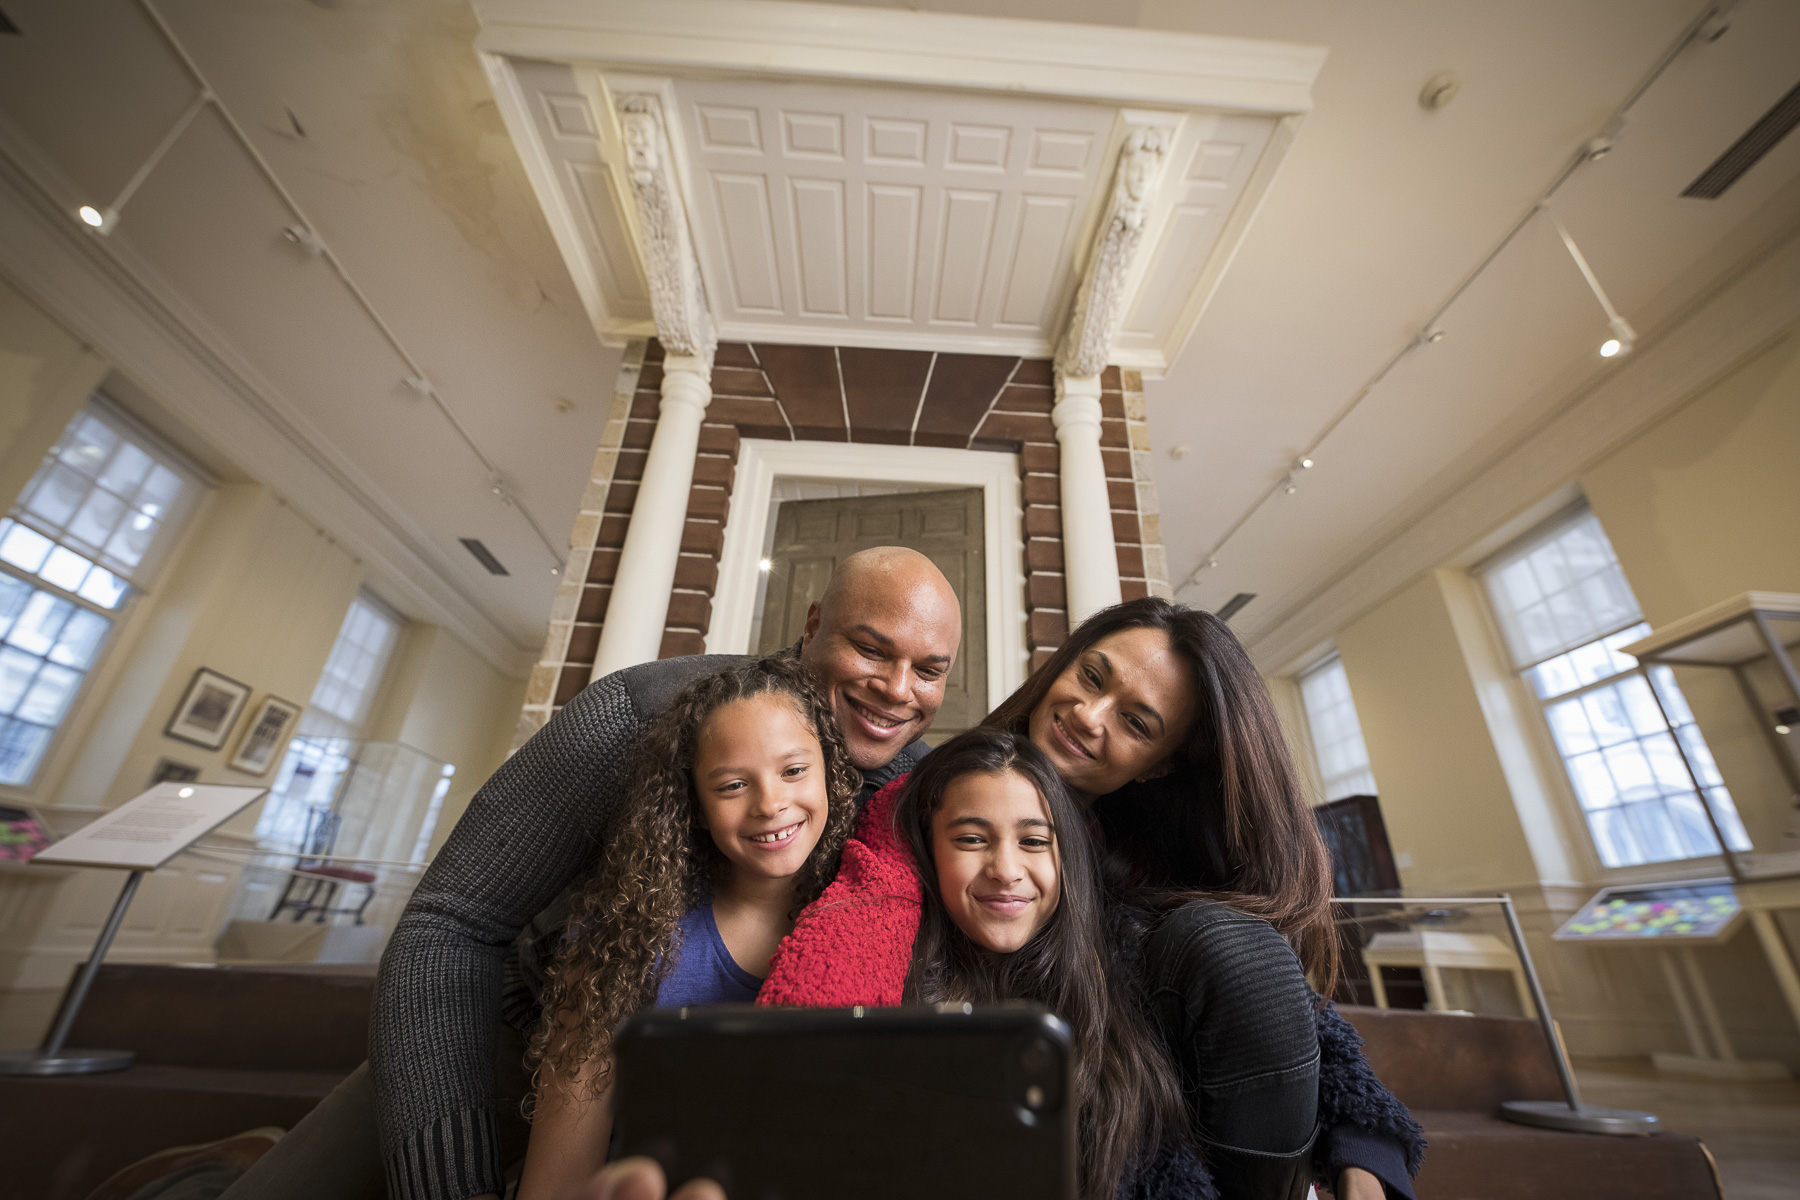 A man and a woman take a selfie with two young girls in front of a door.